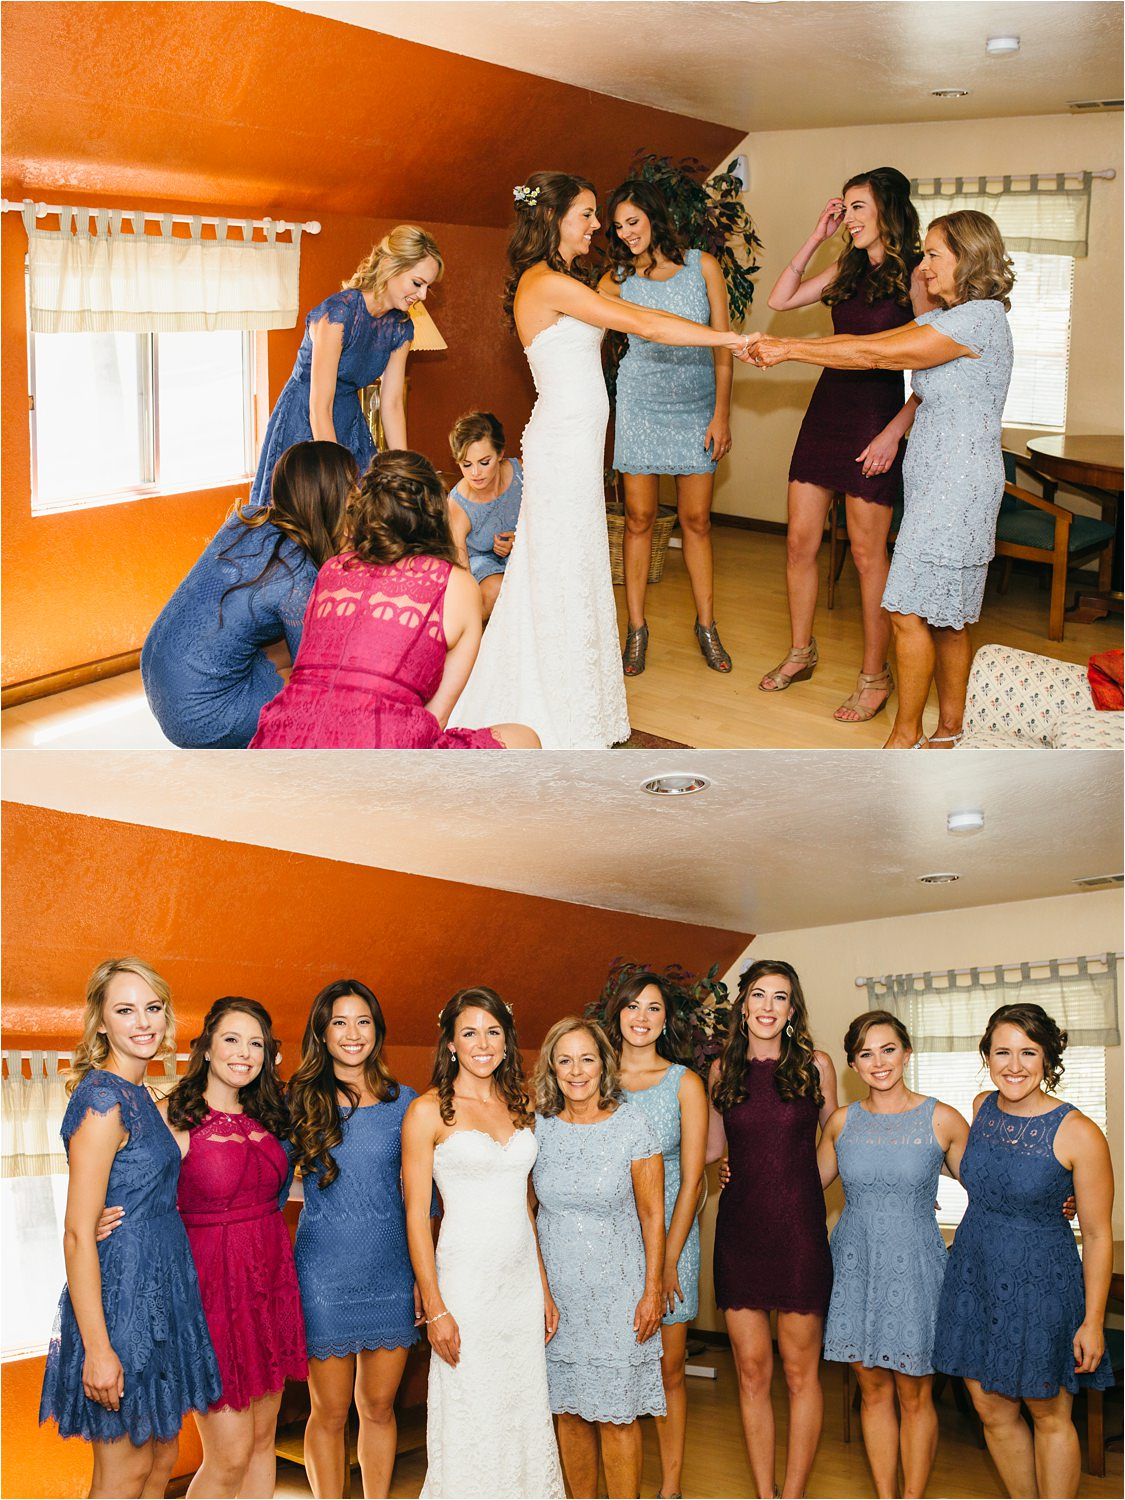 Bride & Bridesmaids - Mountain Wedding - Cabin Wedding - https://brittneyhannonphotography.com